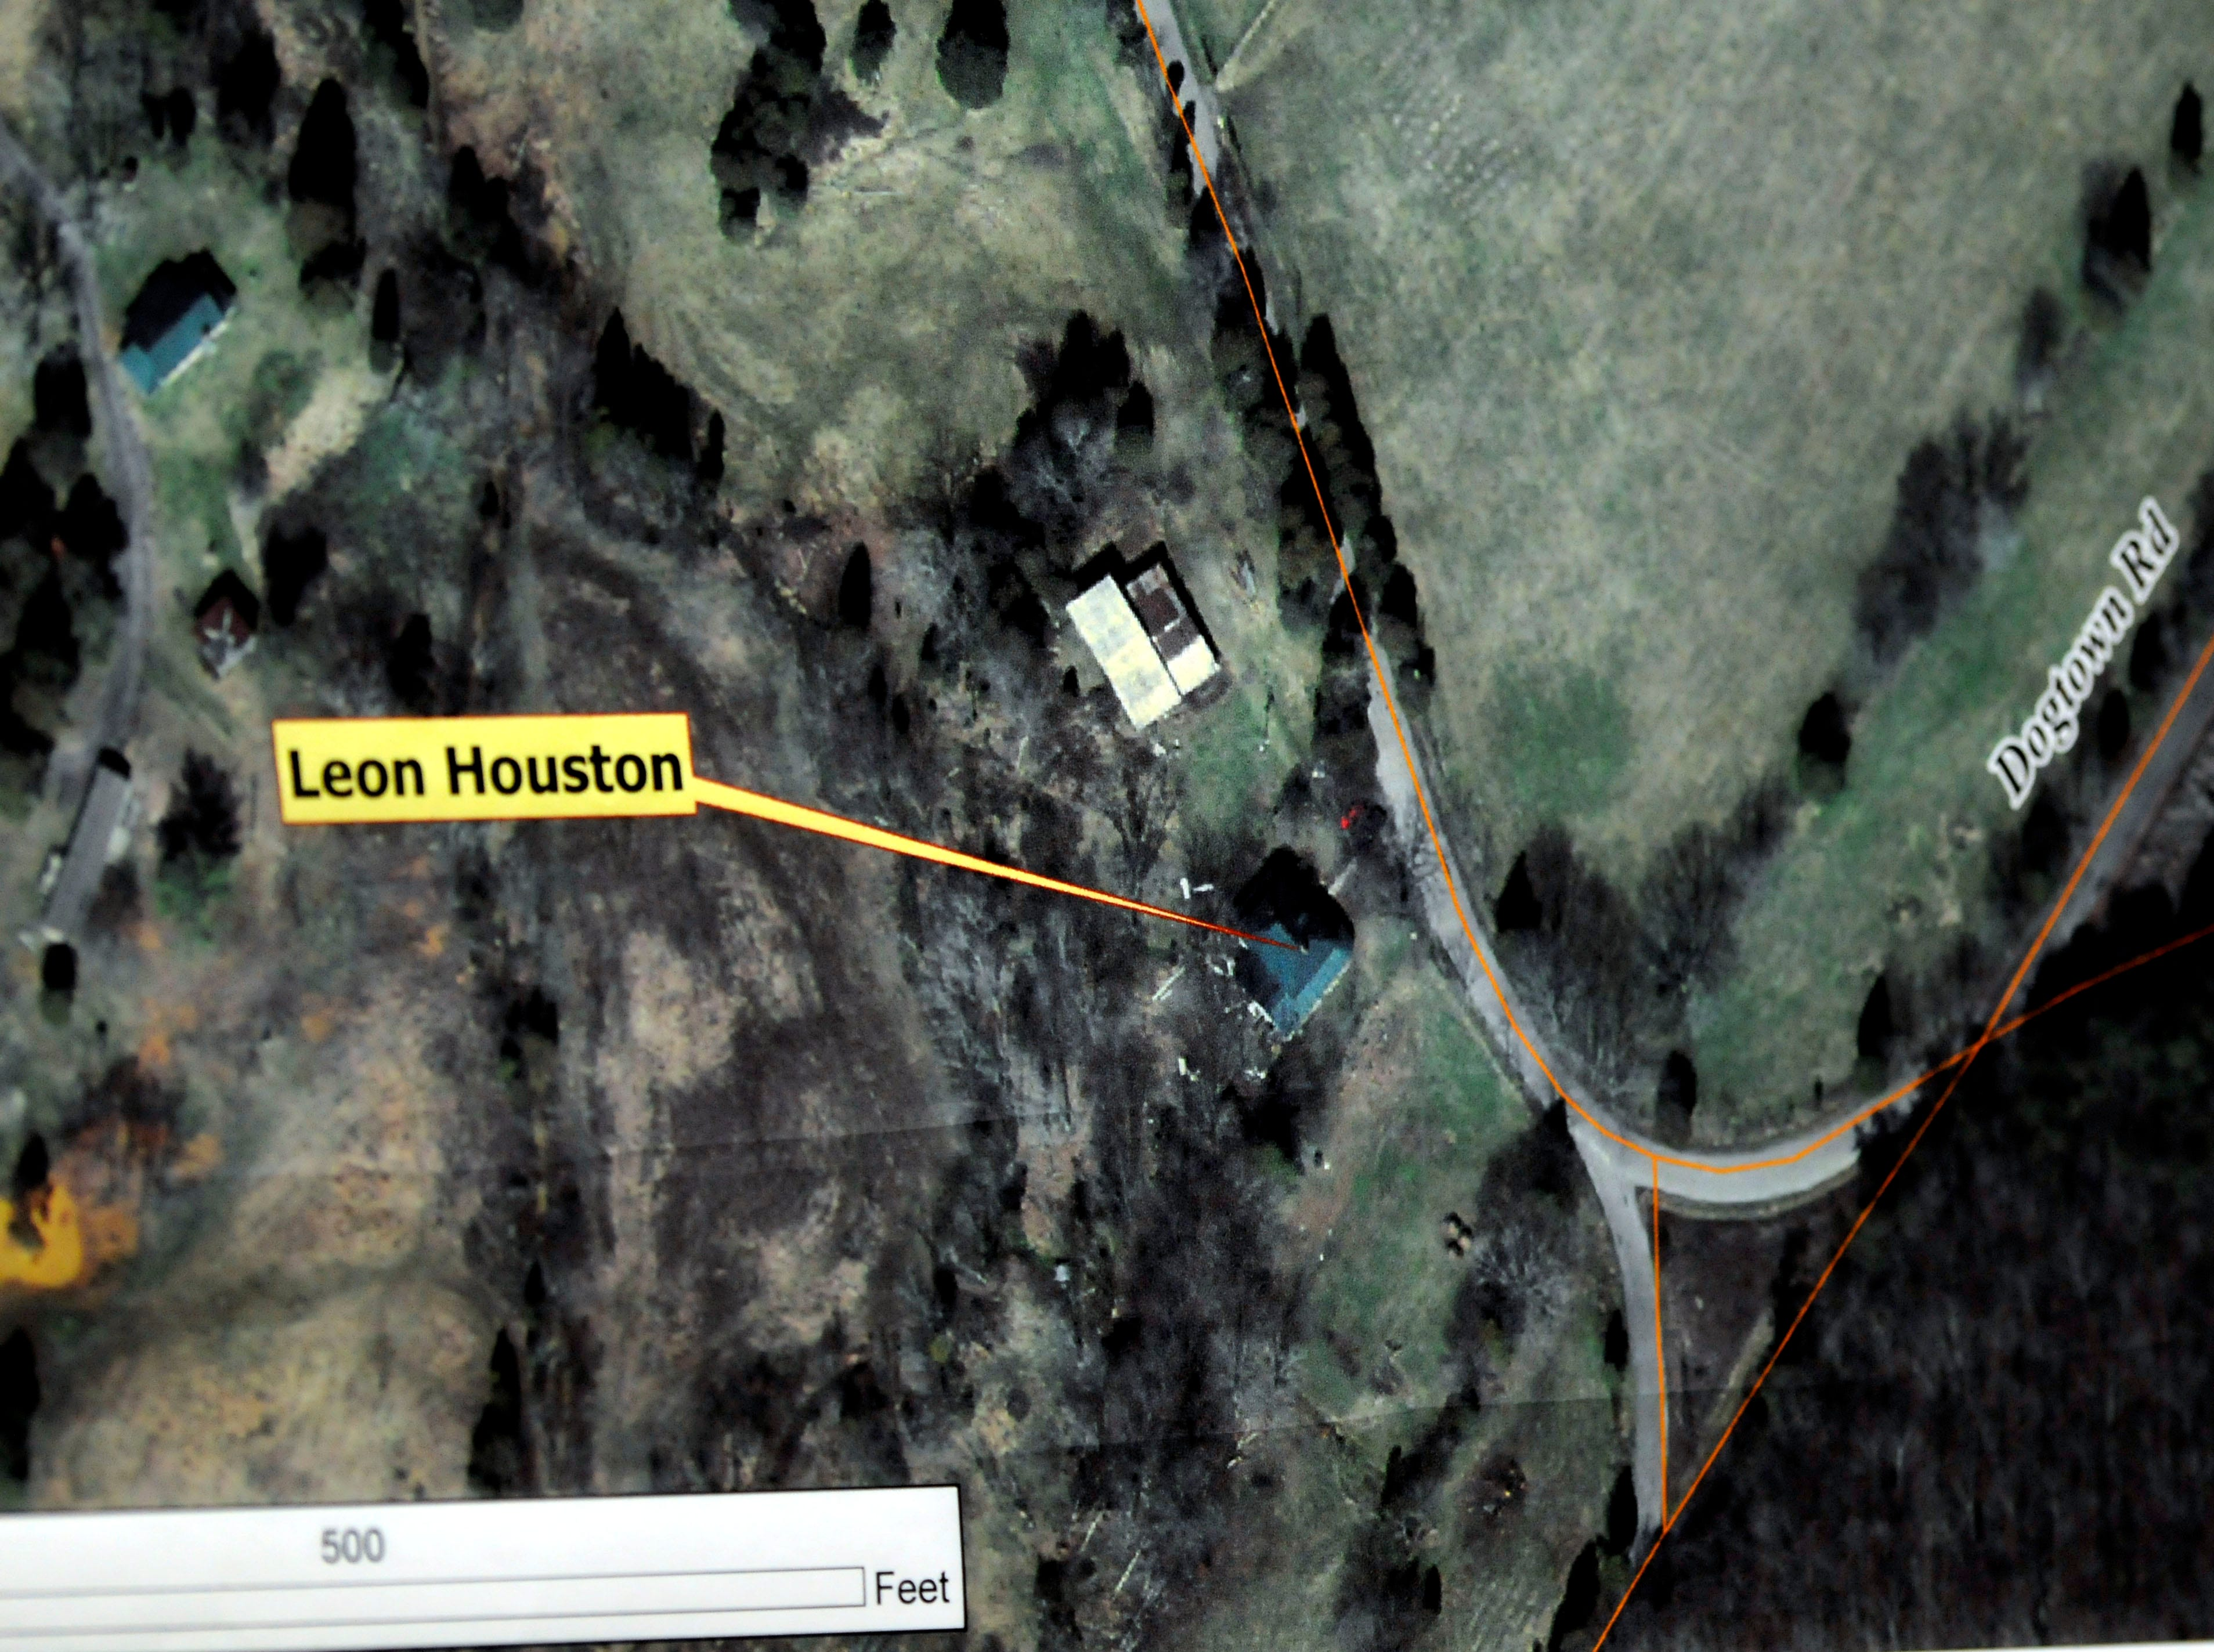 The aerial map used during the trial showing the location of Leon Houston's home on Barnard Narrows Road. The defense resumed its case Tuesday in the double murder trial of Rocky Joe Houston in Roane County Circuit Court. Houston is accused of the May 2006 ambush murders of Roane County Sheriff's Office Deputy William Birl Jones, 53, and his ride-along friend Gerald Michael Brown, 44. Tuesday, December 16, 2008